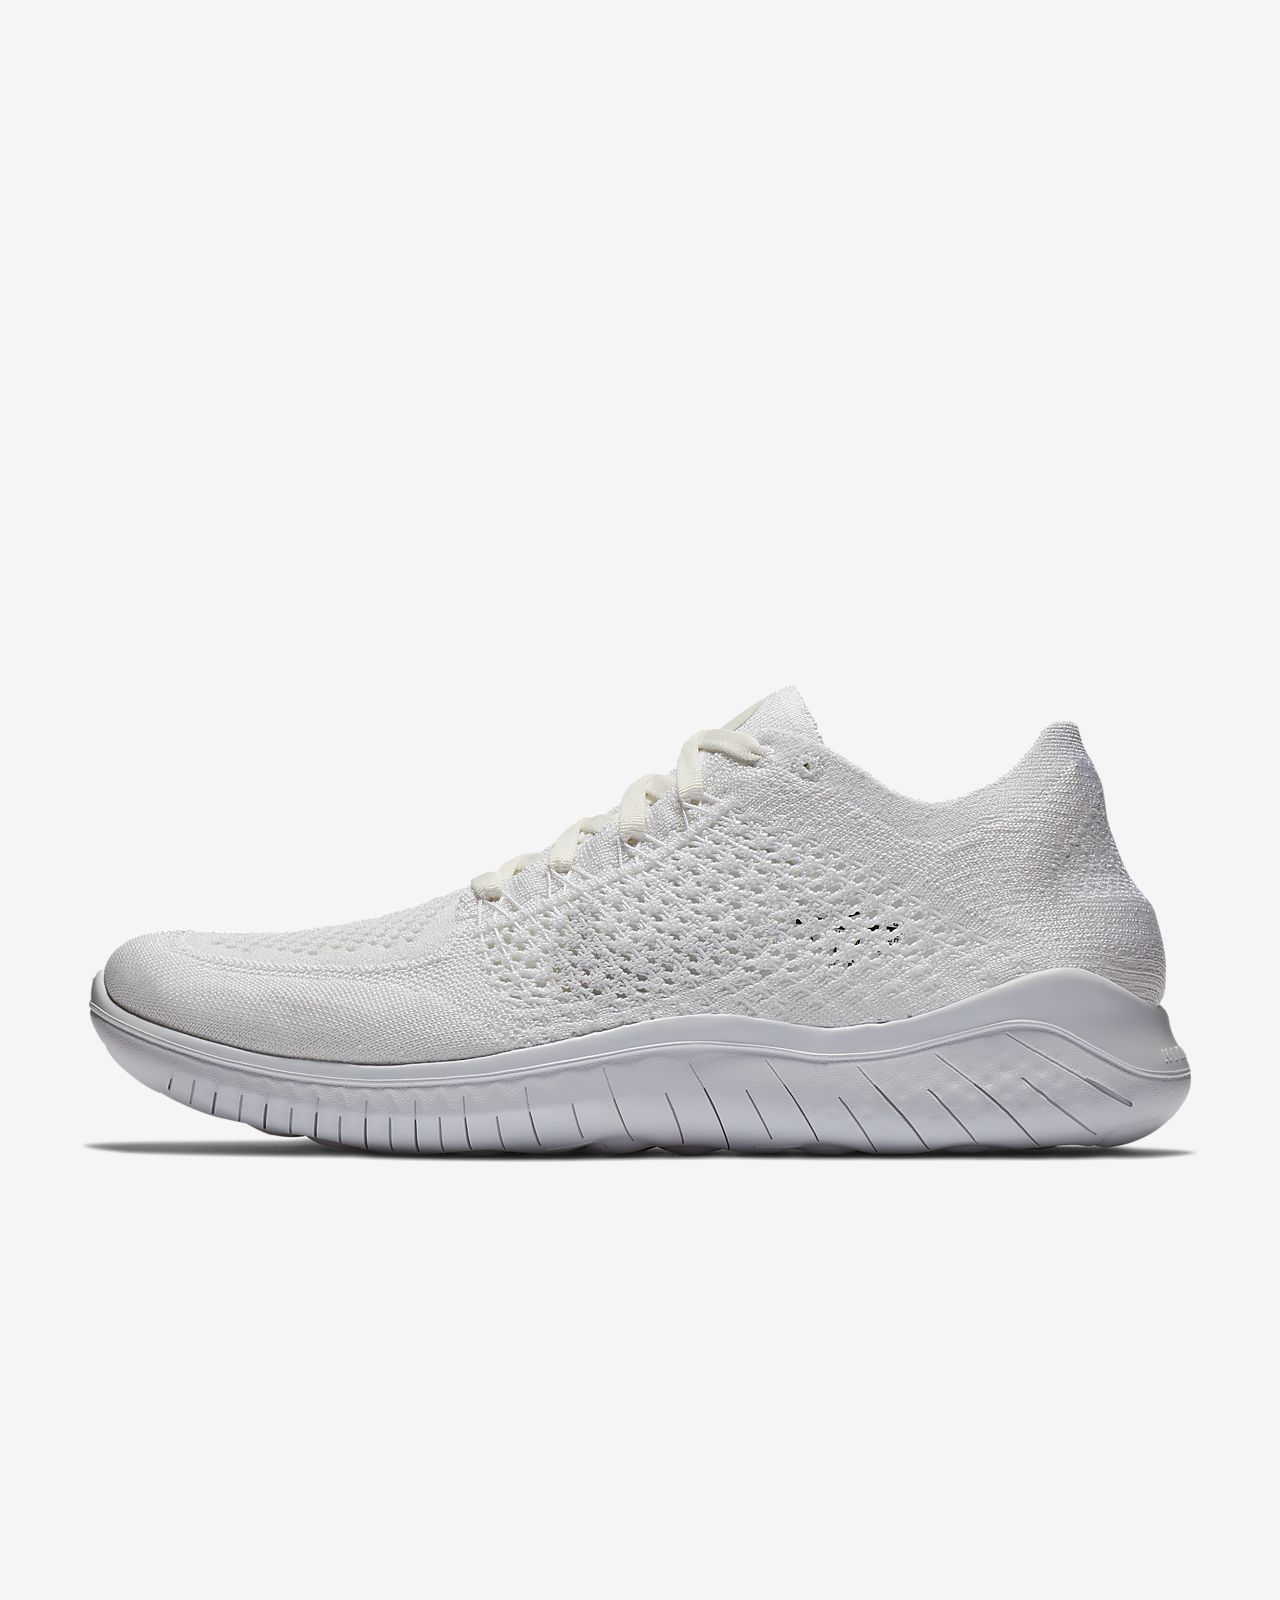 buy popular aff5c 78549 ... Nike Free RN Flyknit 2018 Men s Running Shoe